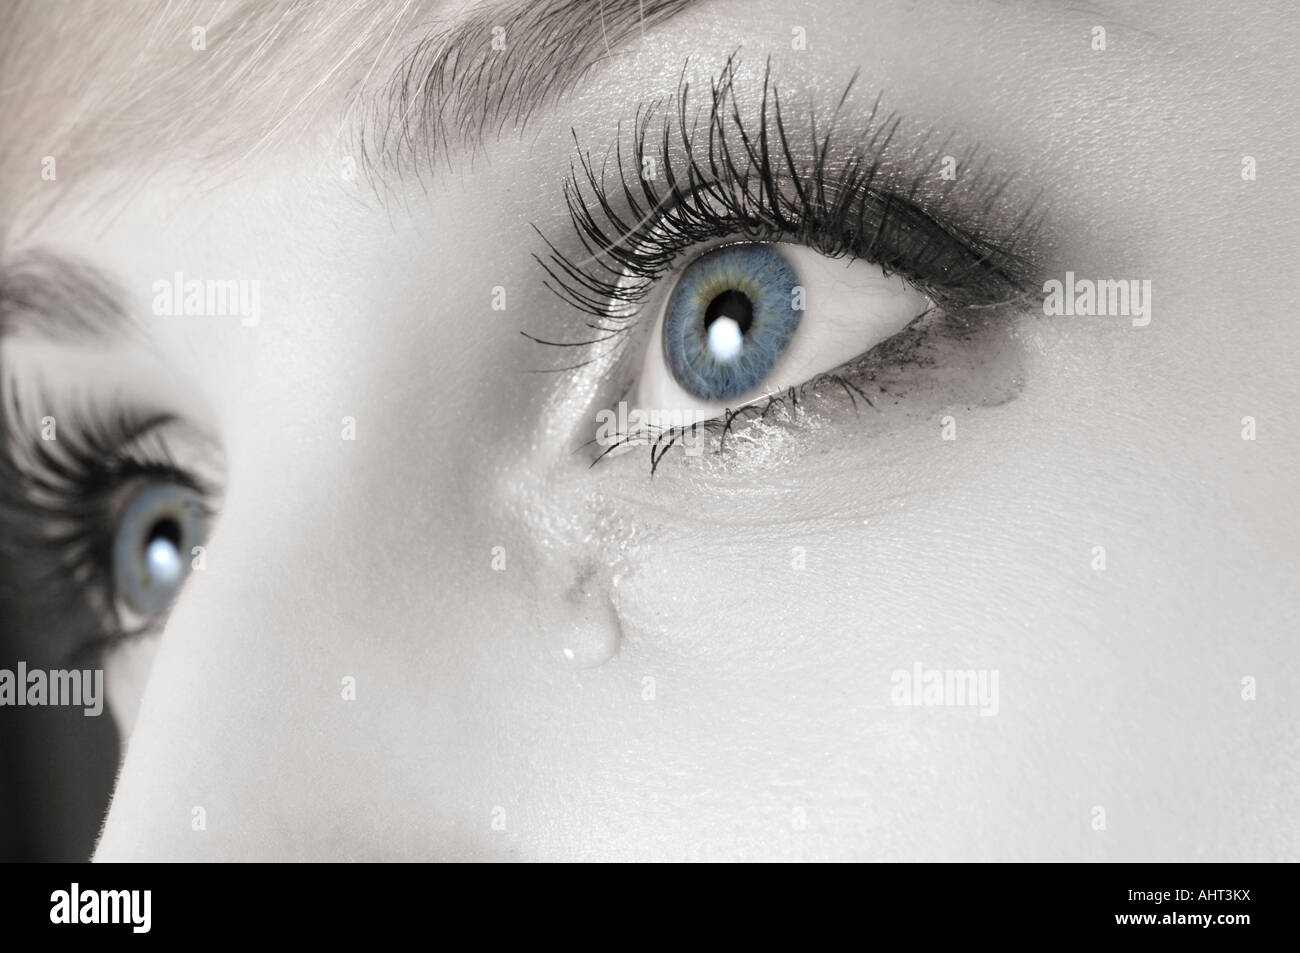 Blue tearful female eye with makeup running - Stock Image